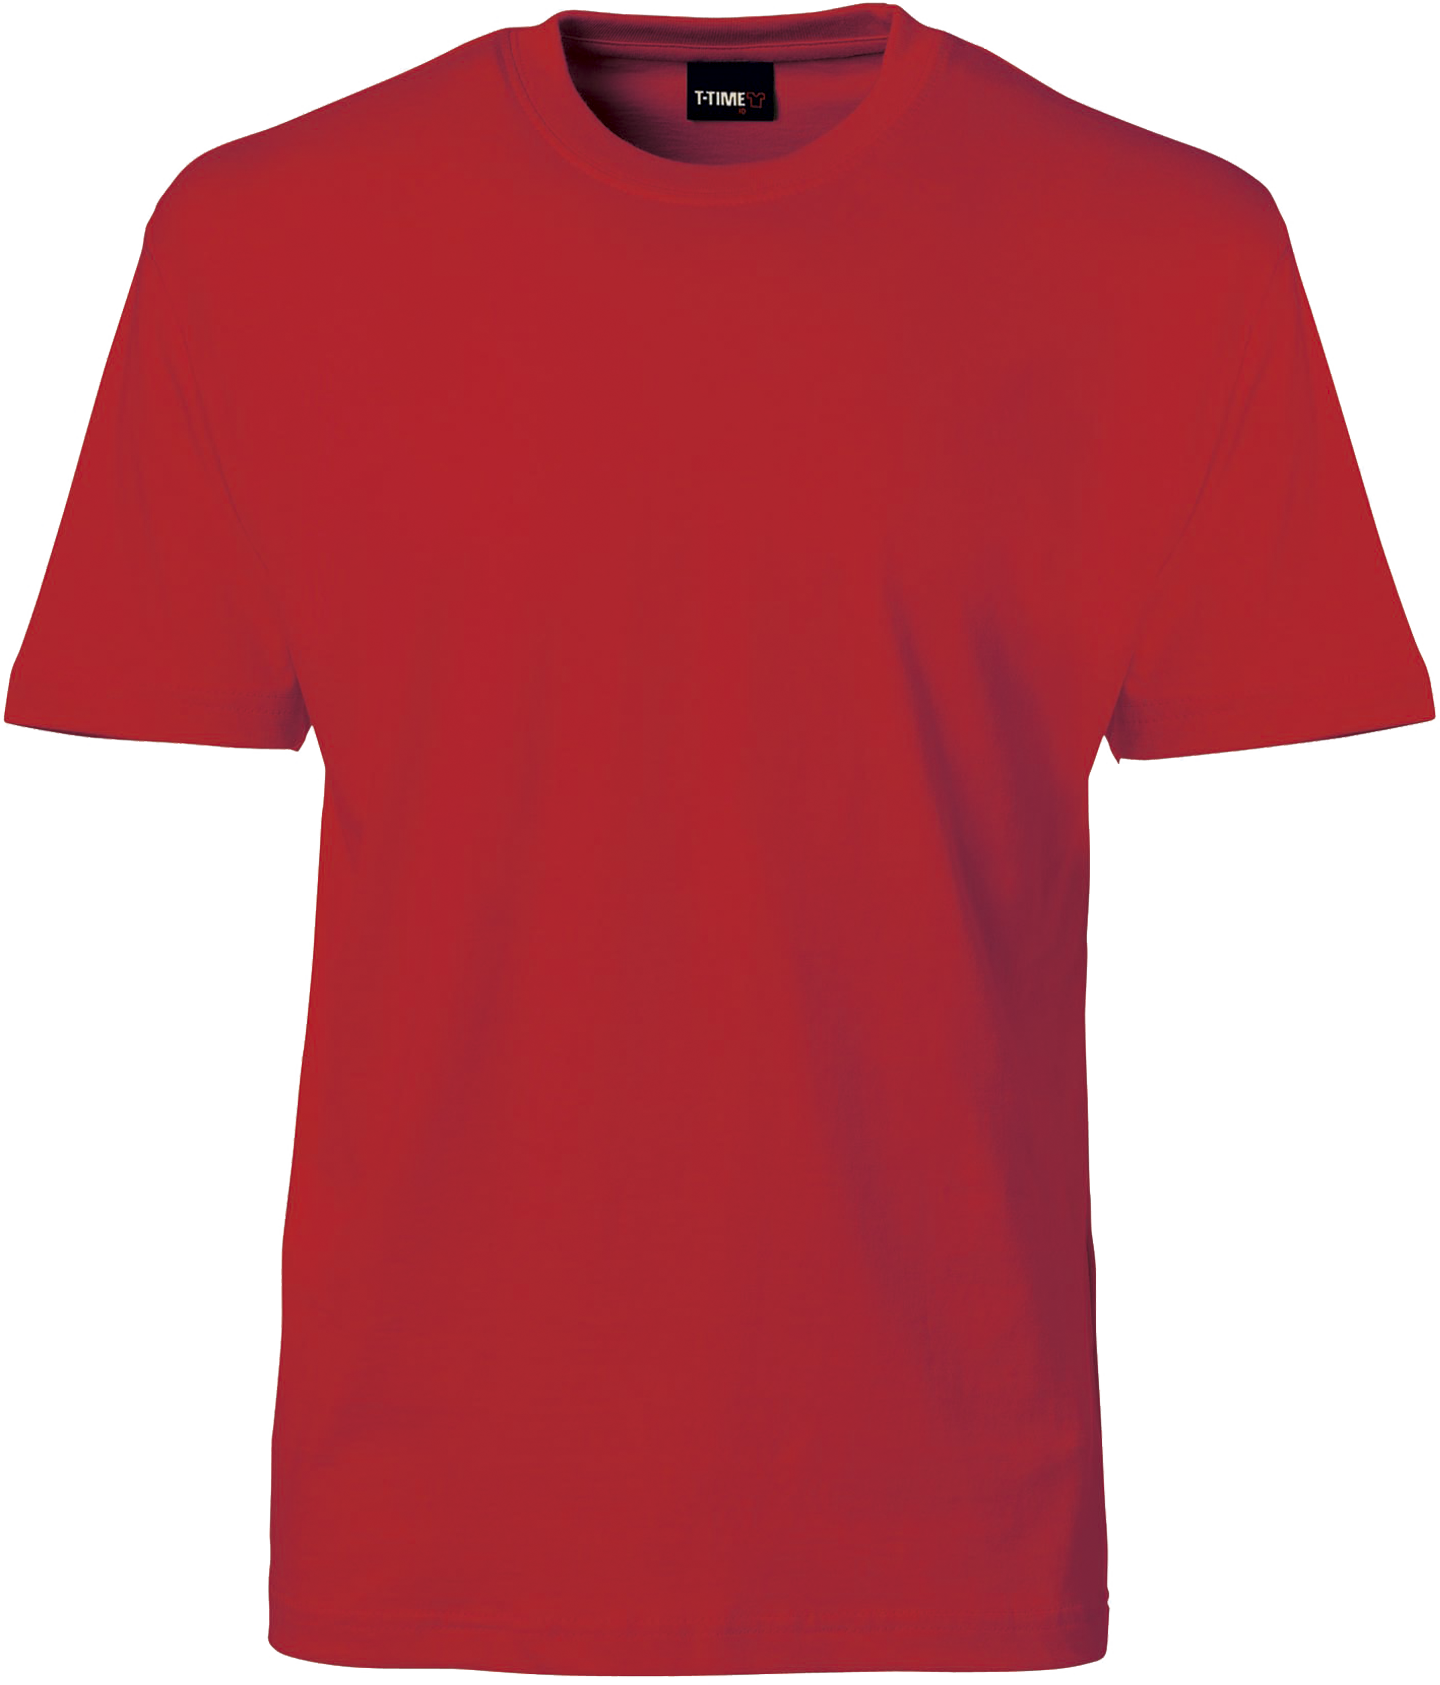 Mens T-Shirt, Basic (815010100)